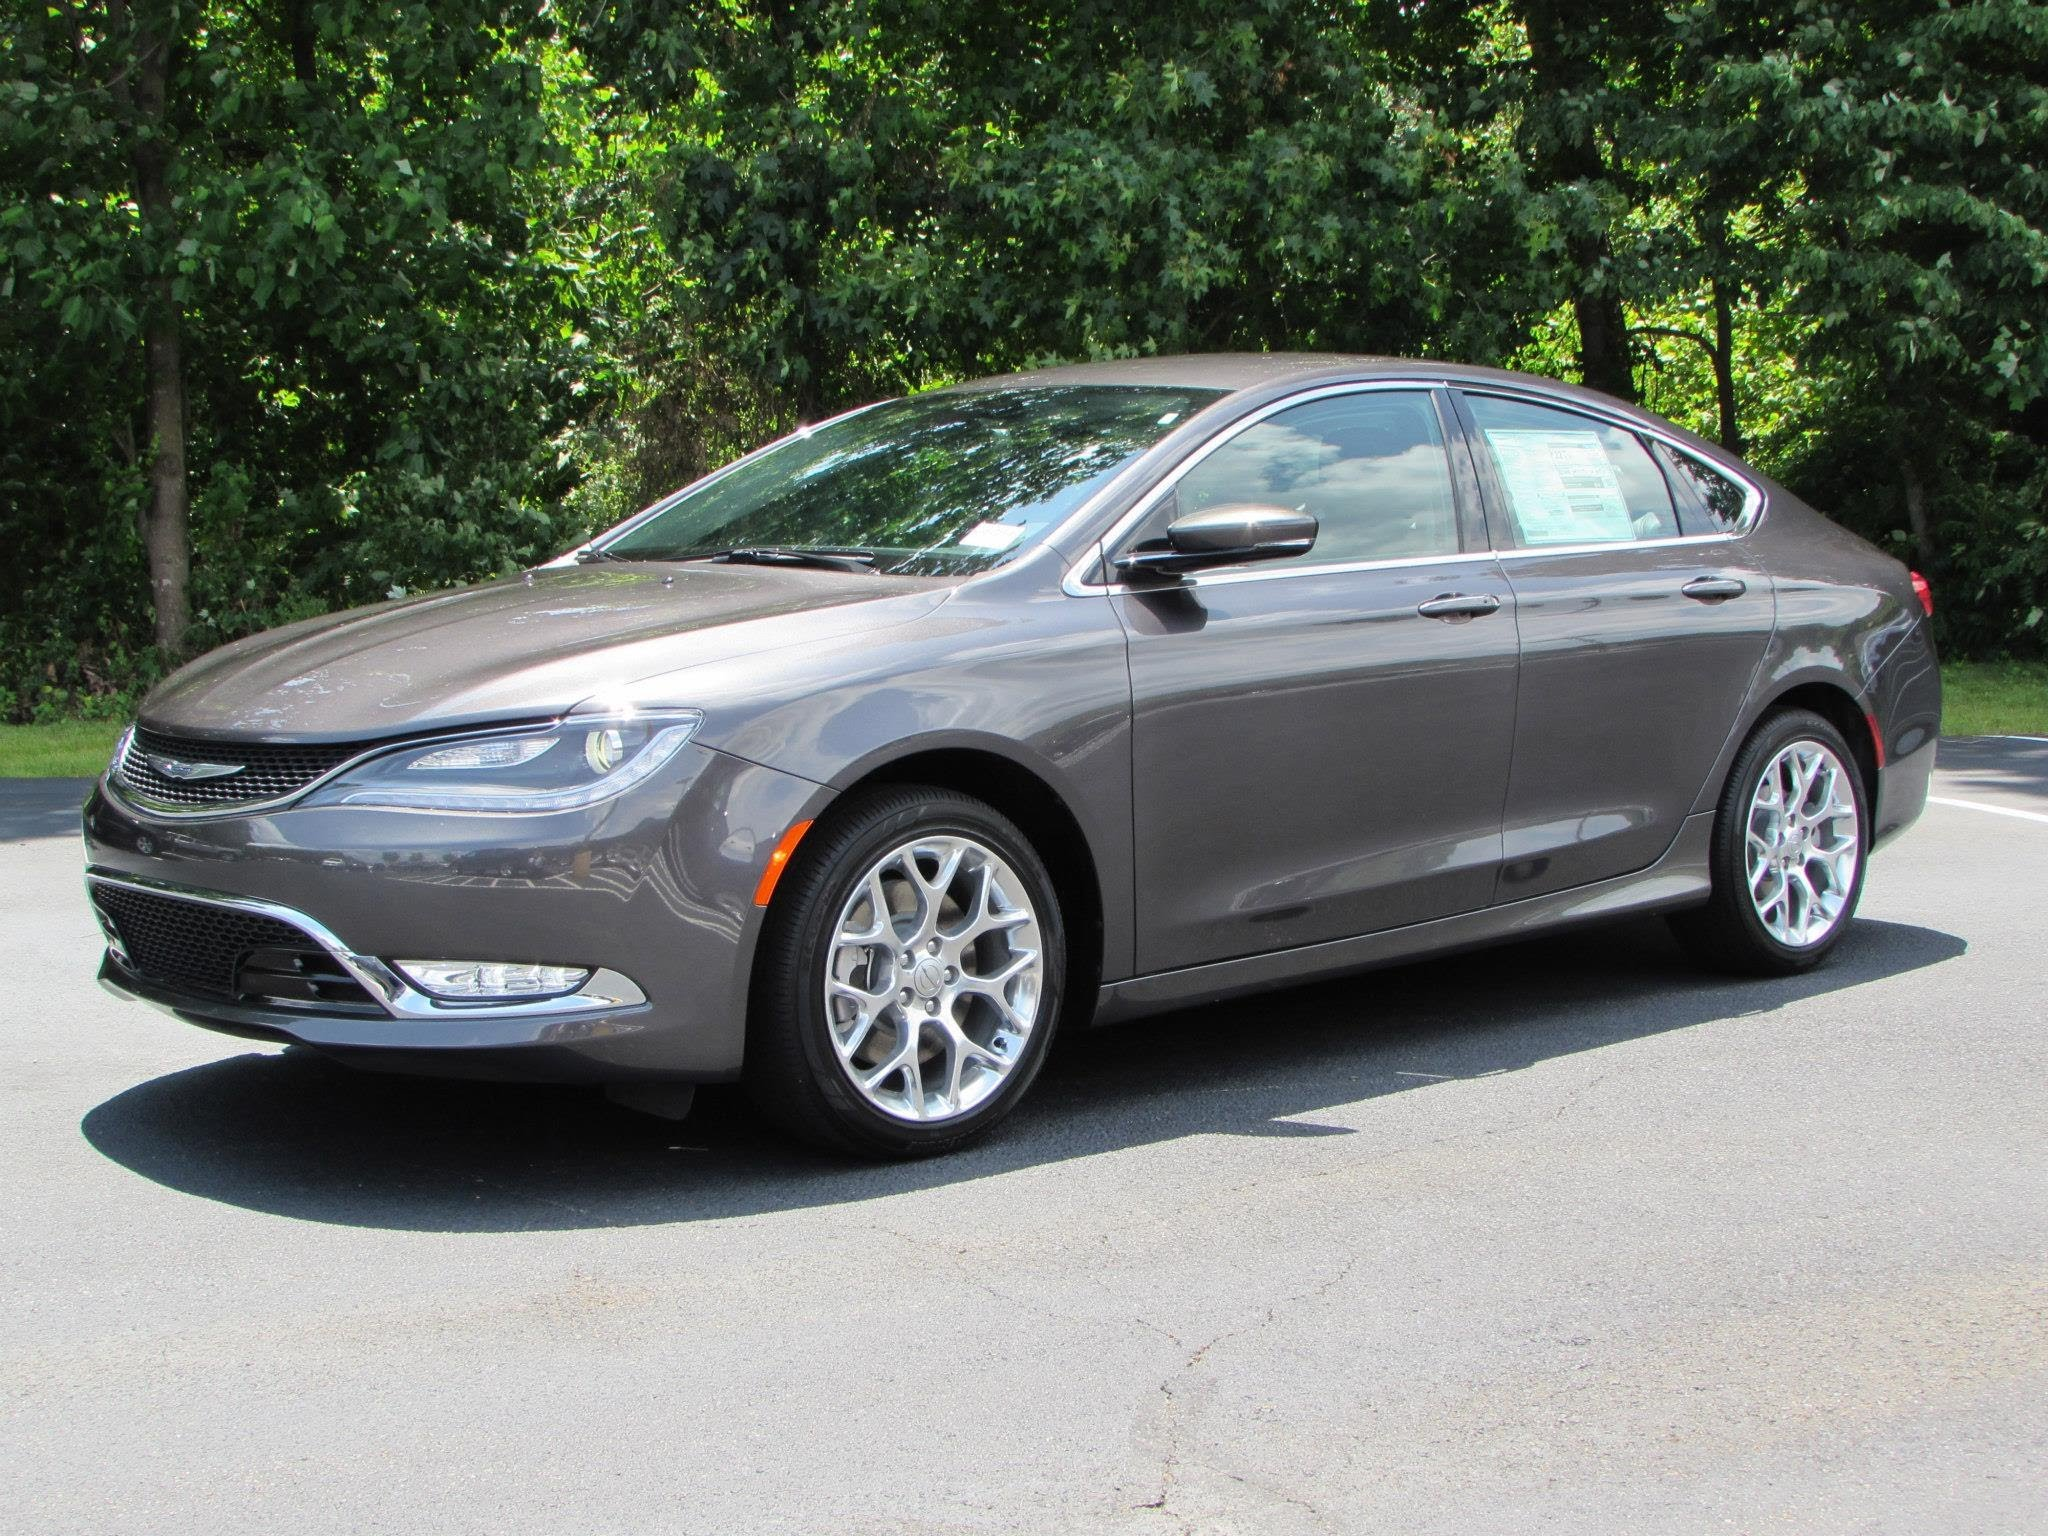 2015 Chrysler 200 Car Review Video Florida